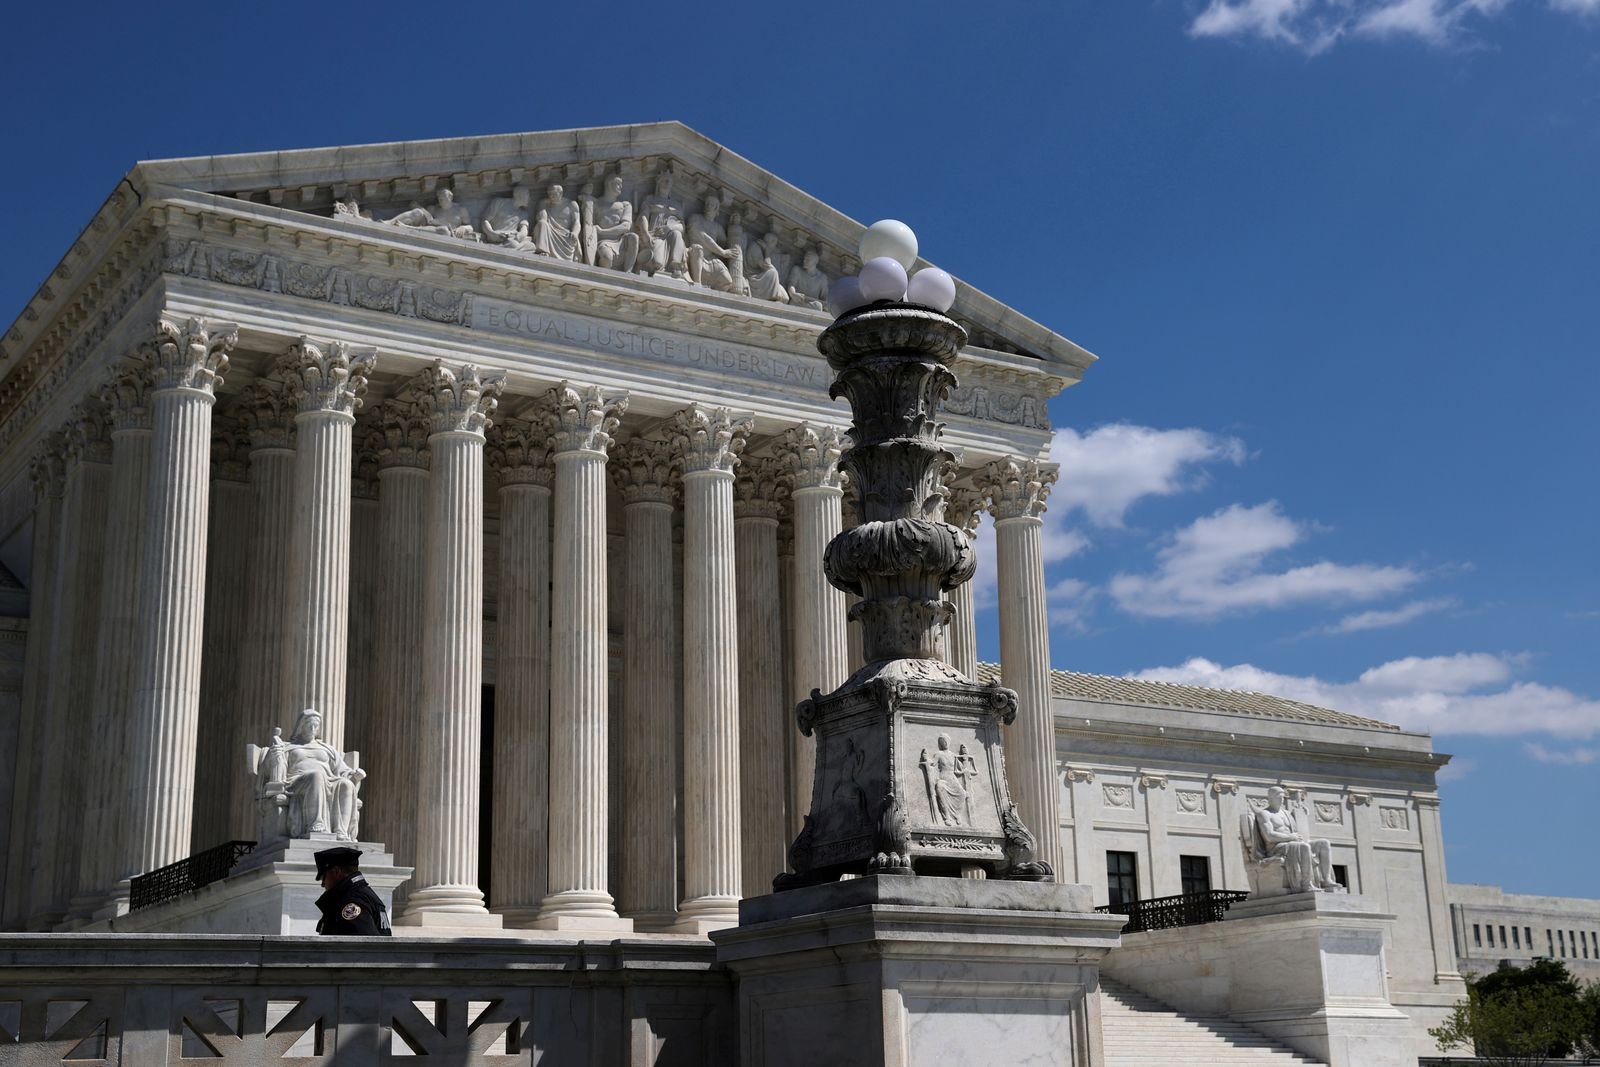 FILE PHOTO: A police officer is mostly alone on the plaza in front of the U.S. Supreme Court building during the coronavirus disease (COVID-19) outbreak in Washington